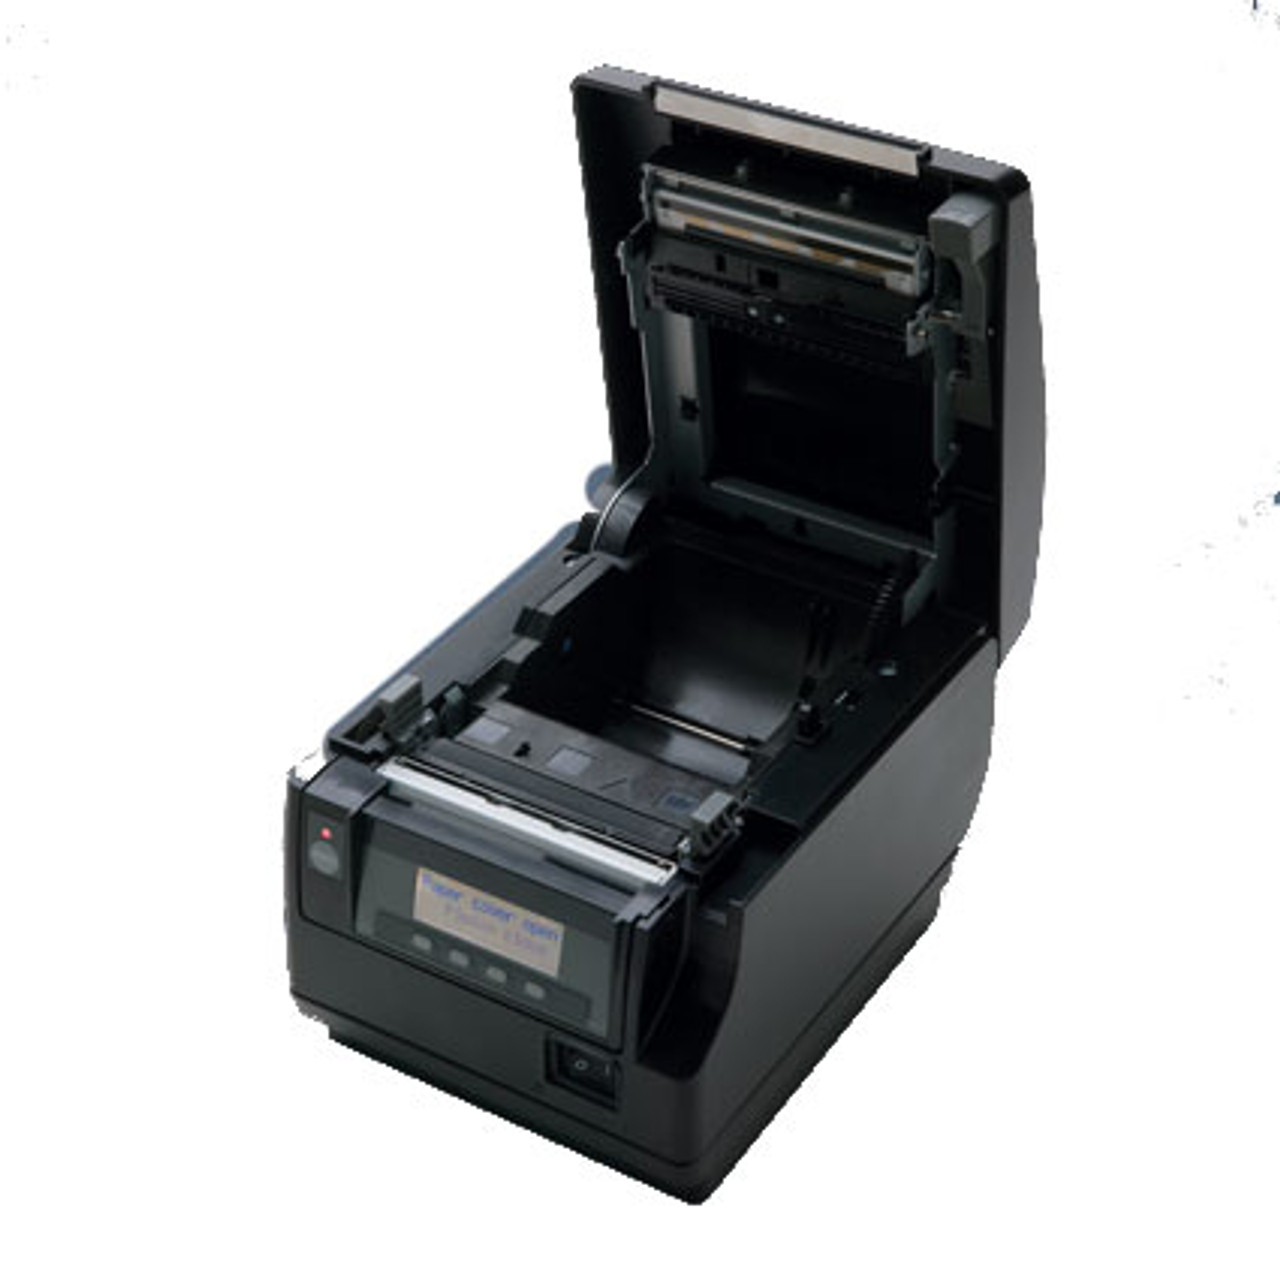 Citizen CT-S851 Thermal Printer Monochrome POS Receipt Printer